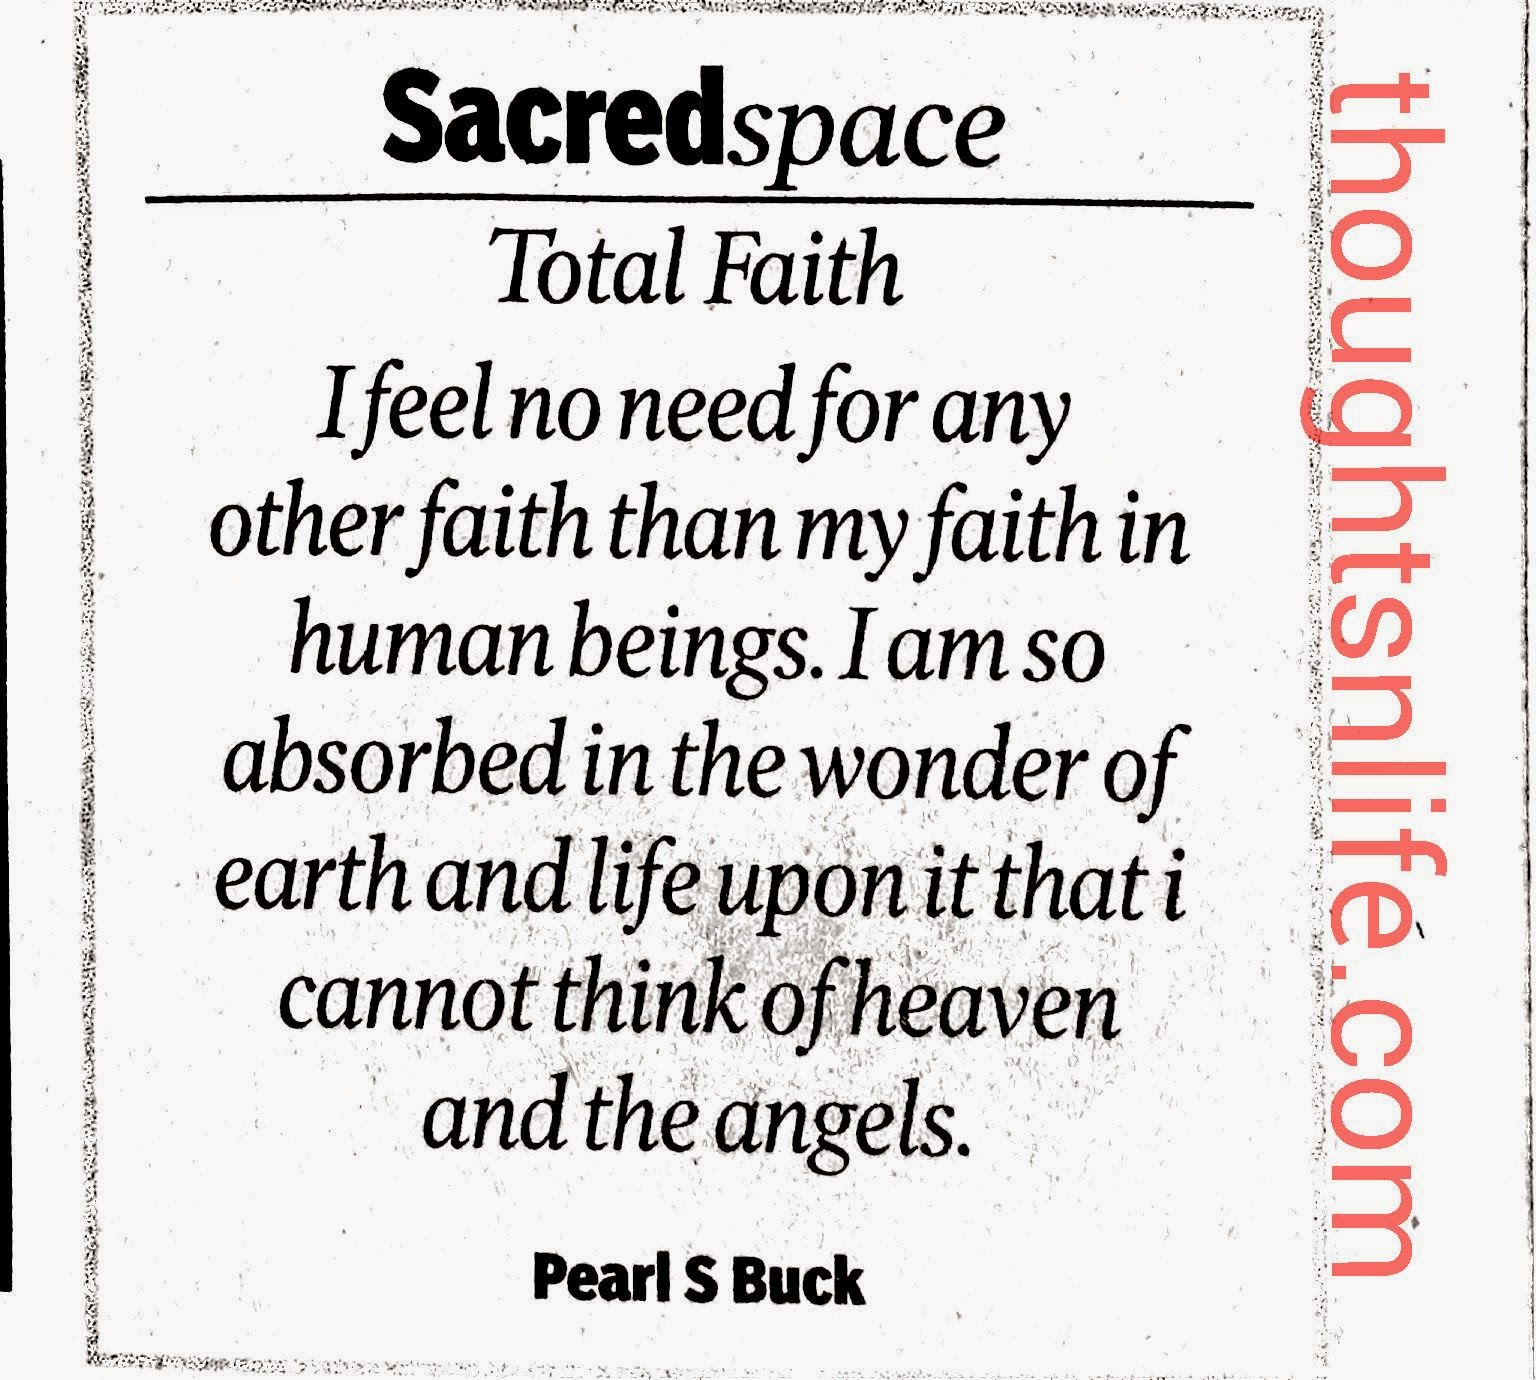 Thoughtsnlife.com:Total Faith - I feel no need for any other faith than my faith in human beings. I am so absorbed in the wonder of earth and life upon it that i cannot think of heaven and angels. ~ Pearl S Buck